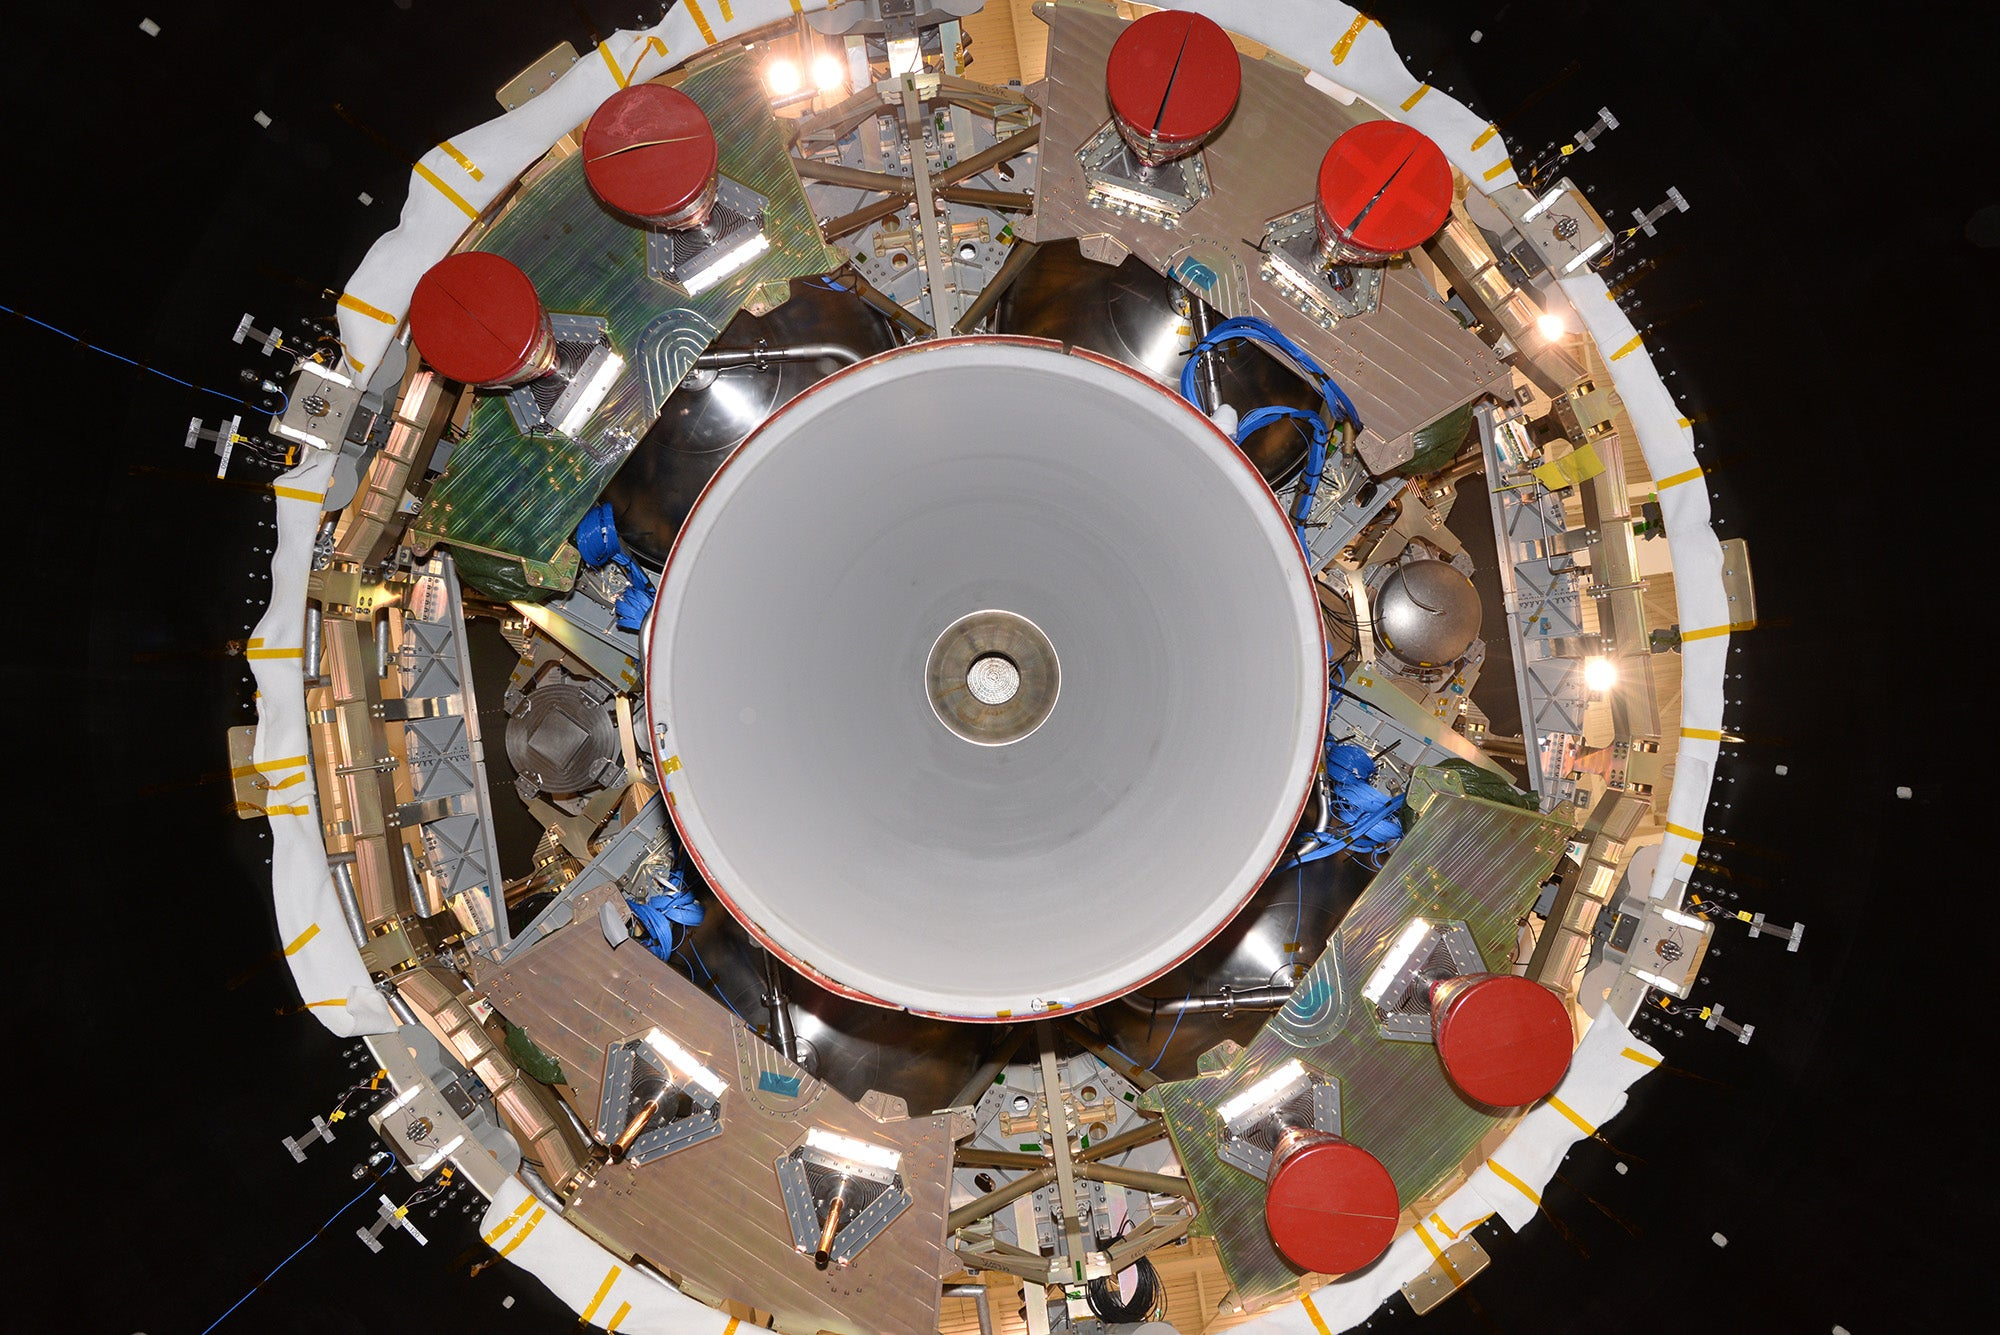 The Underside of a Spacecraft Is Fascinating